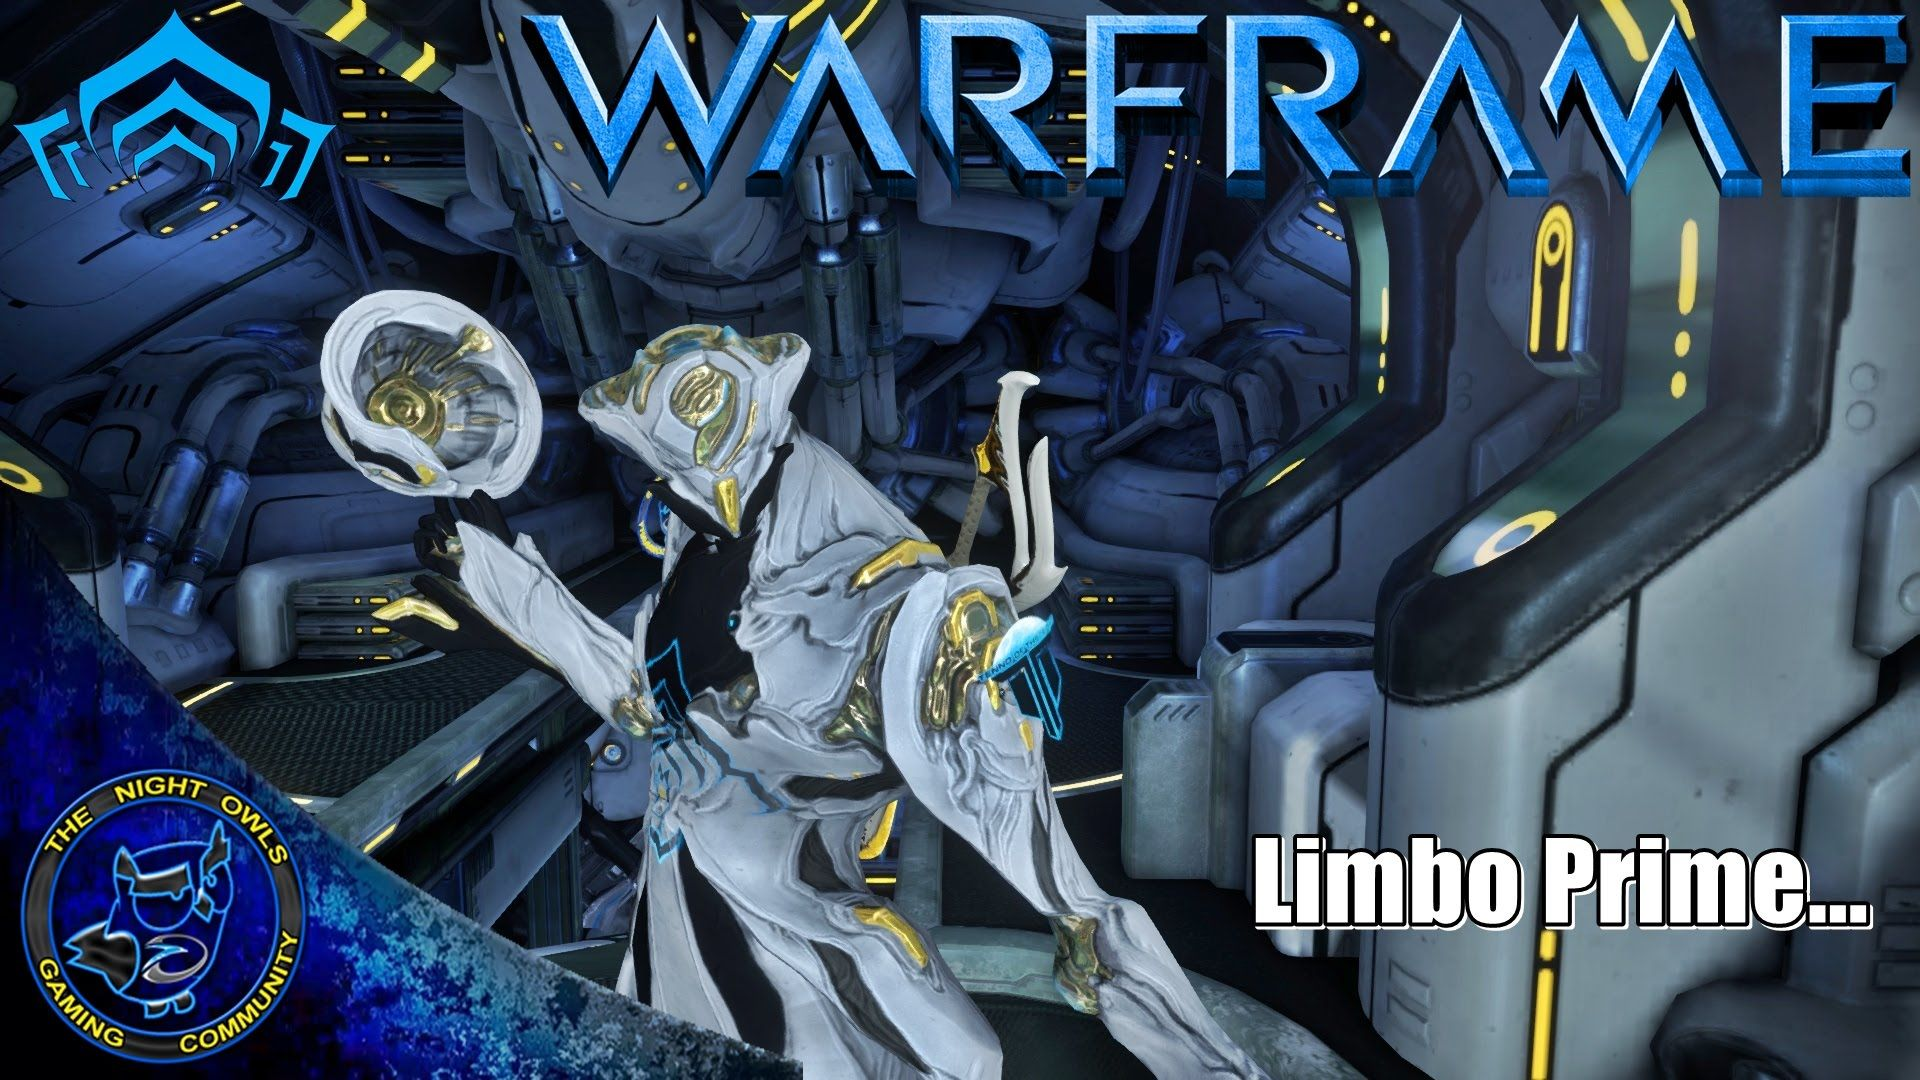 Warframe: Limbo Prime Unleashed         (Sneak Peak Concept